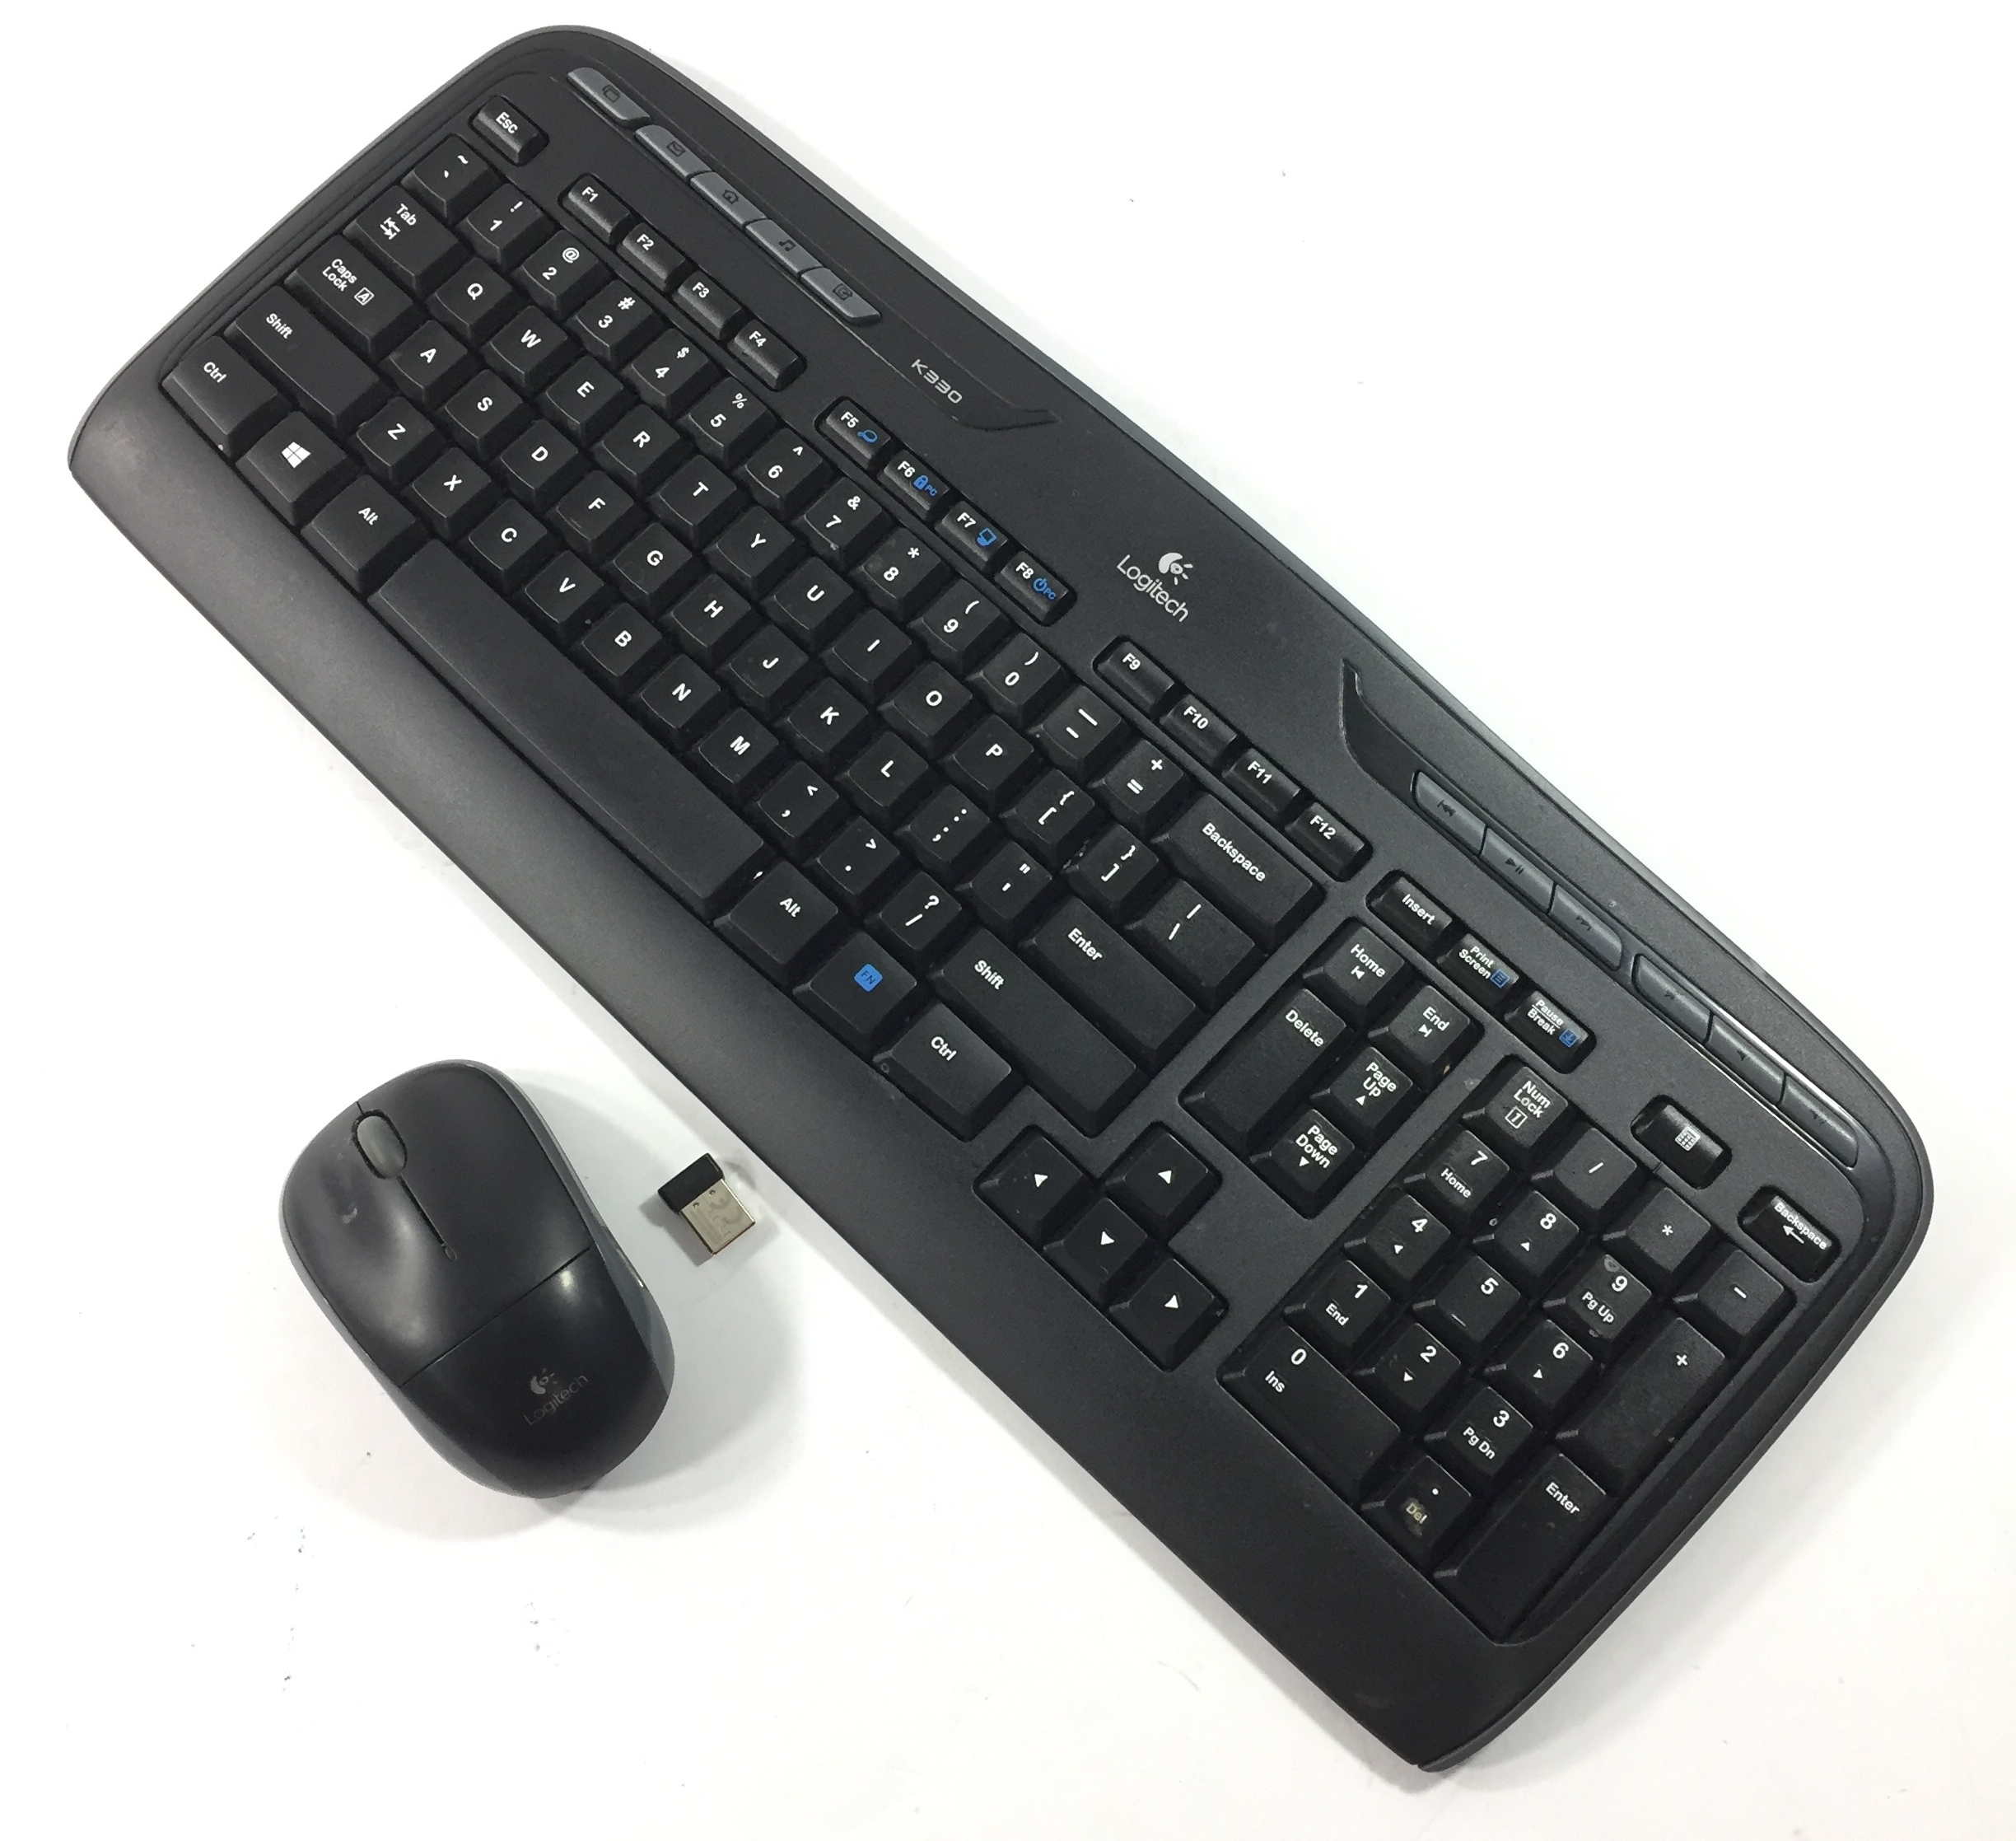 LOGITECH M215 MOUSE WINDOWS 7 DRIVER DOWNLOAD